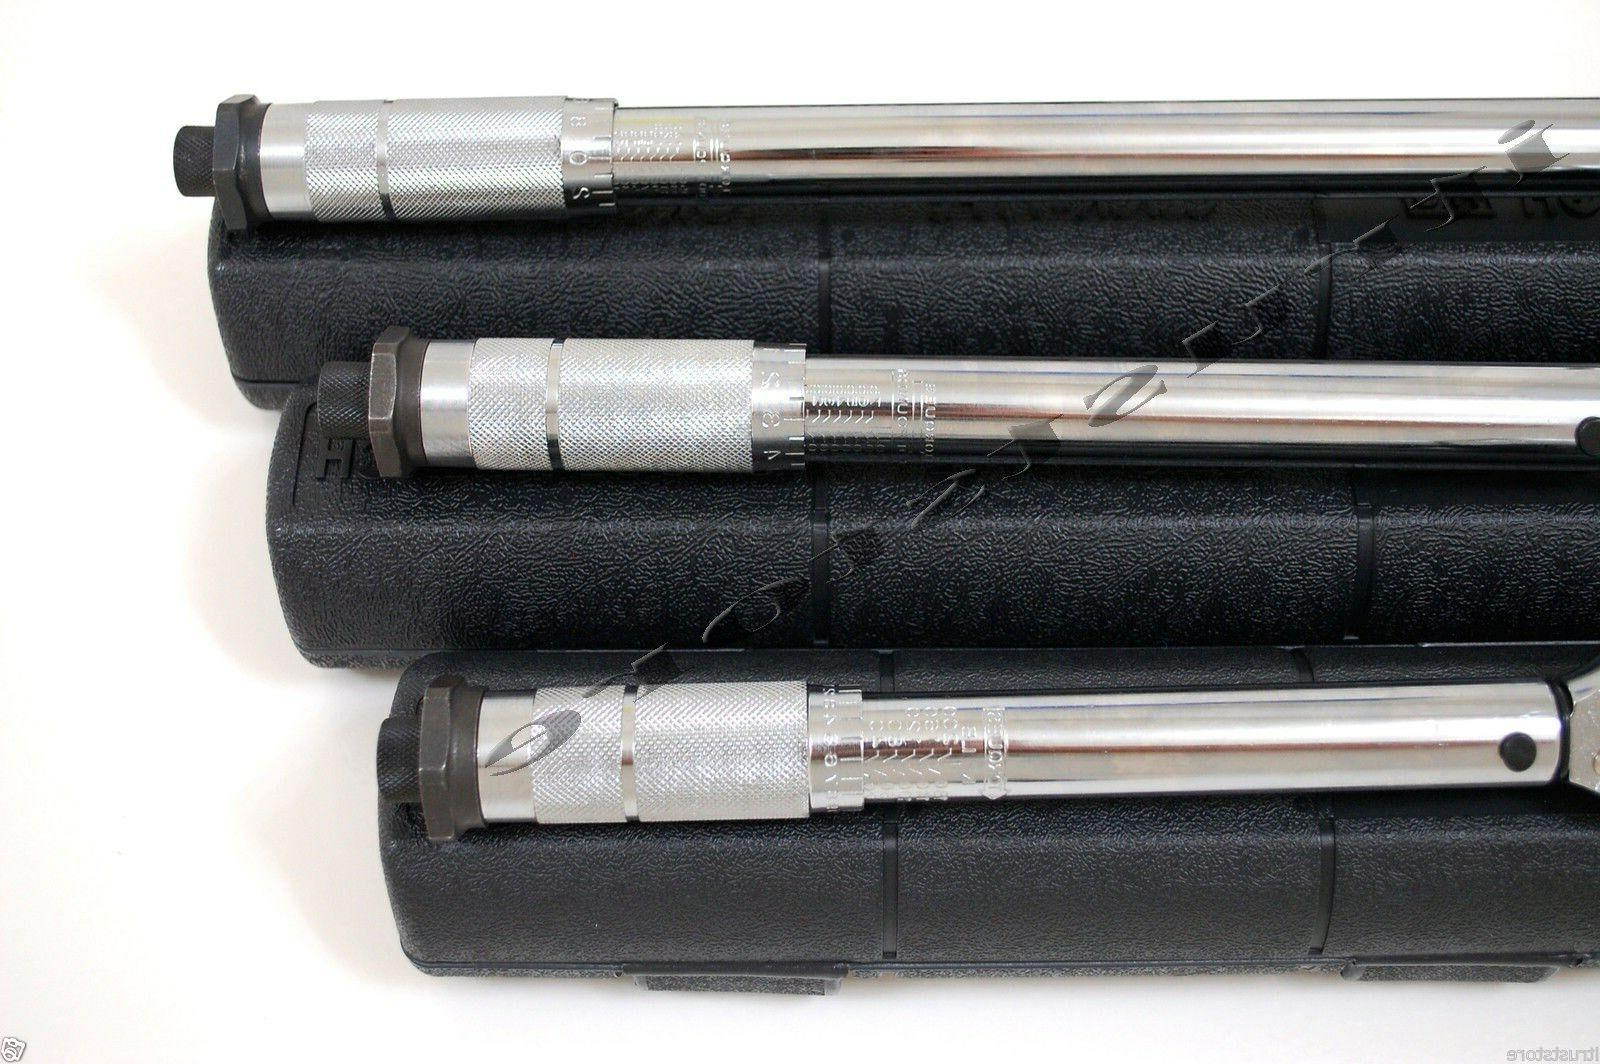 Pittsburgh Wrench Socket Torque Wrenches